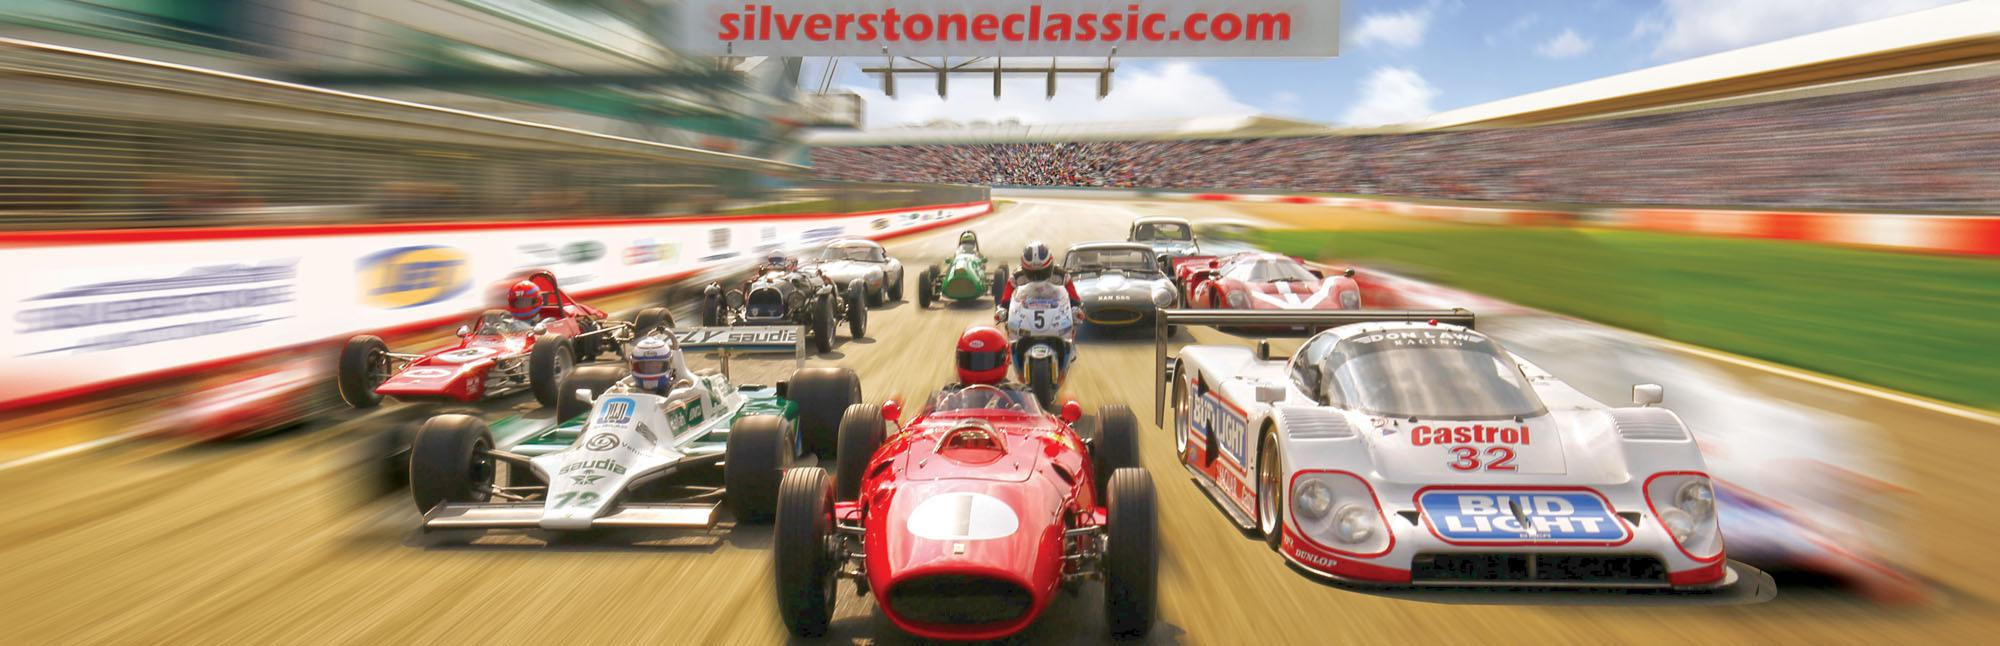 Garageflex exhibiting at the Silverstone Classic 2017